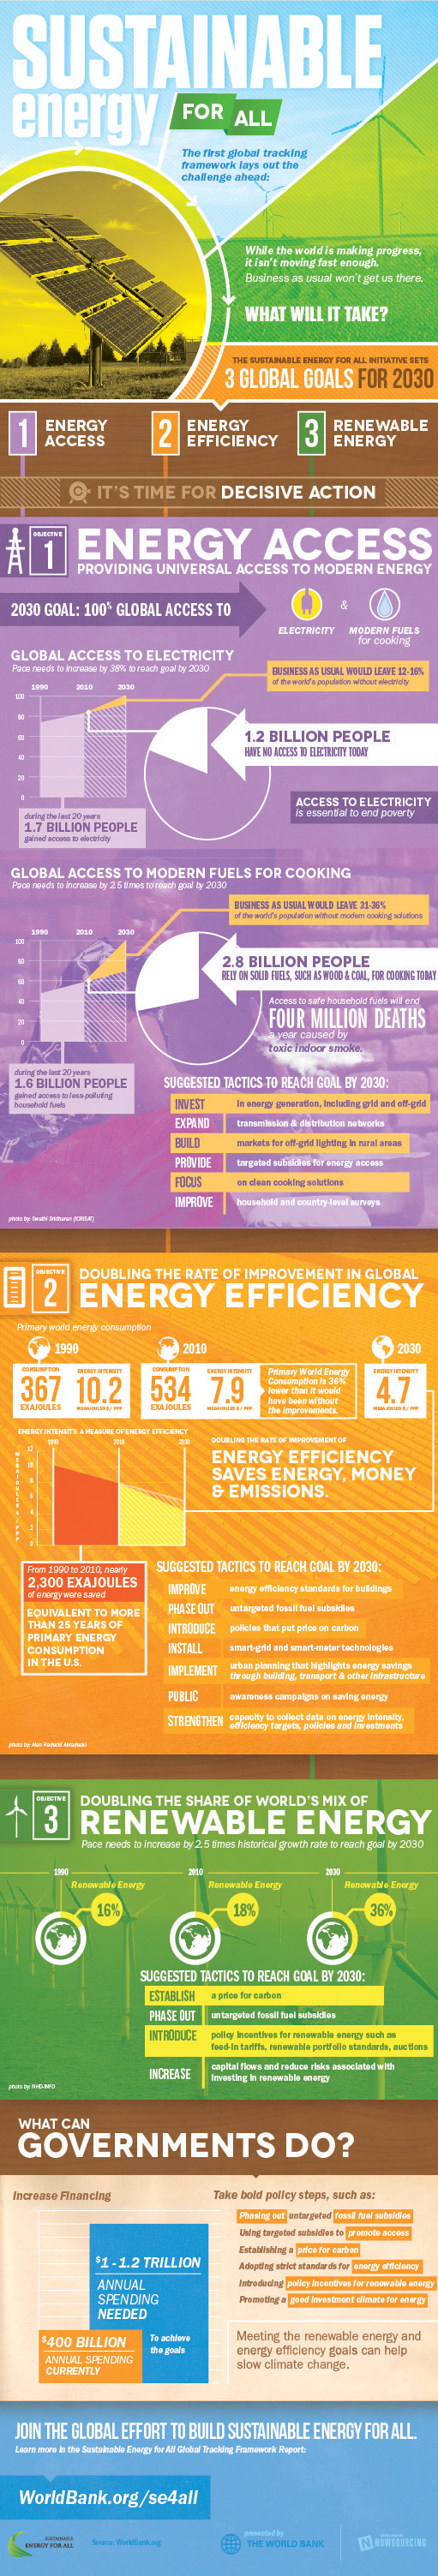 sustainable energy for all infographic